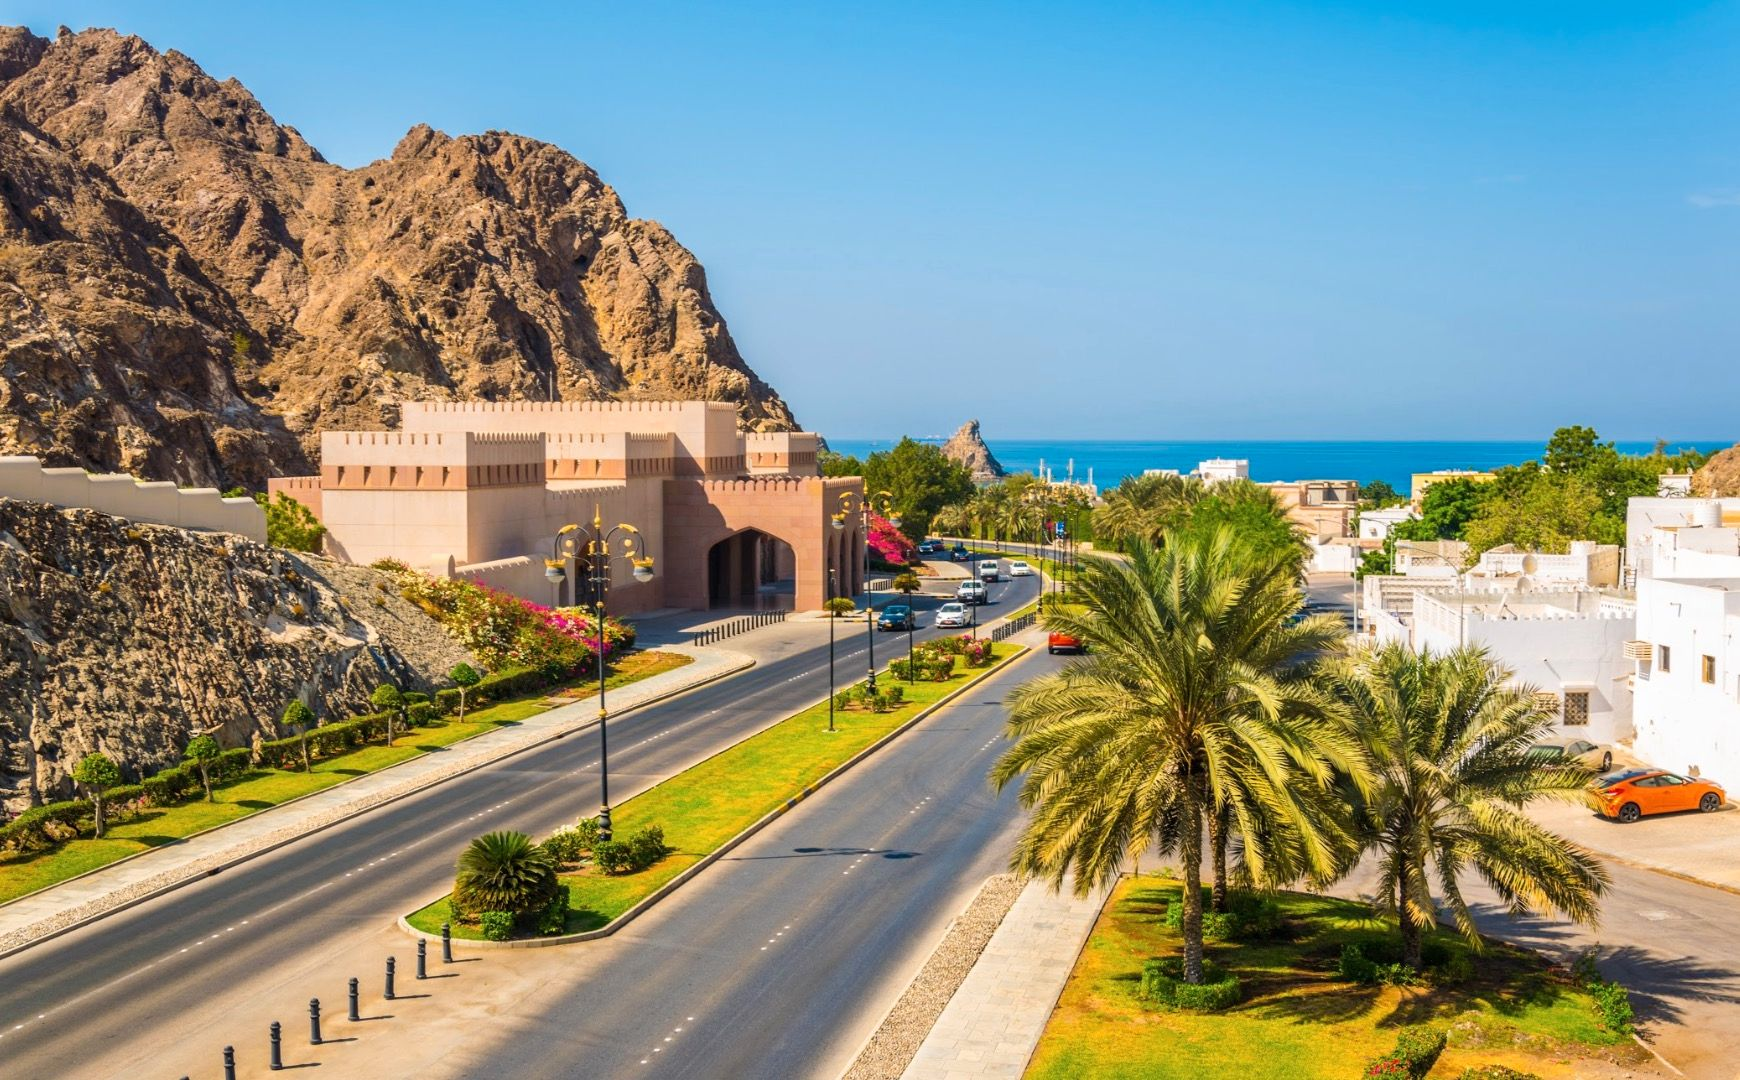 Route, Mascate - Oman